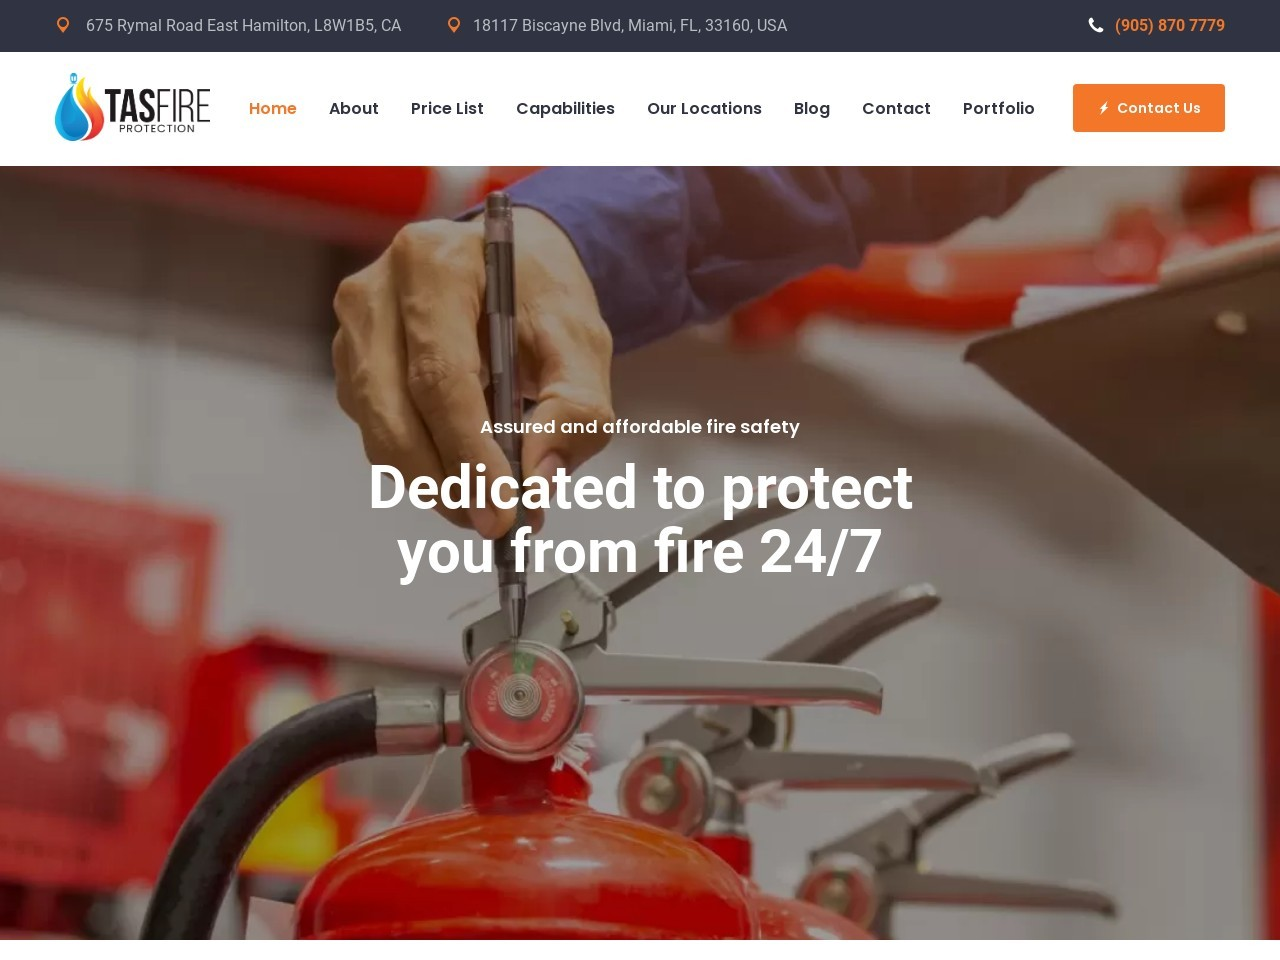 Fire Inspection Services | Fire Extinguisher Inspection | Fire Alarm Inspection